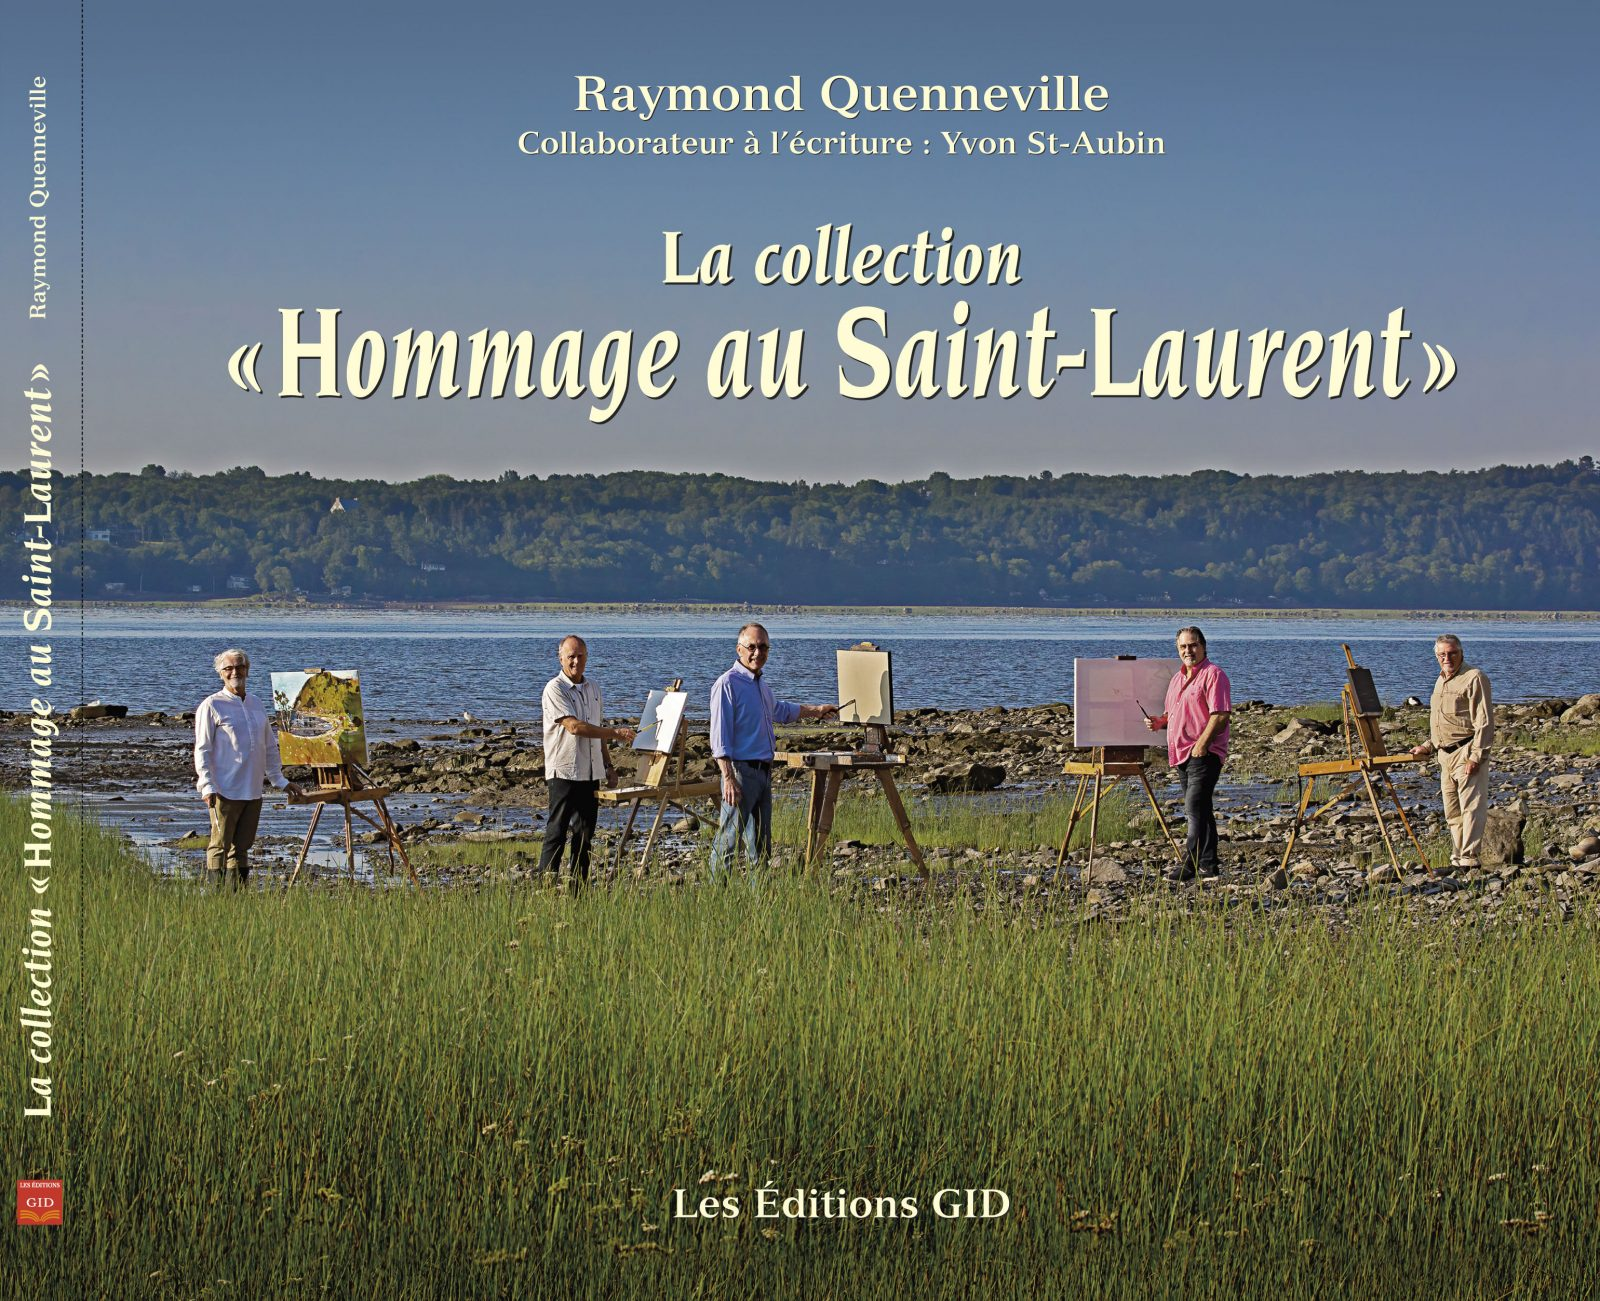 Le livre «La collection Hommage au Saint-Laurent» en vente